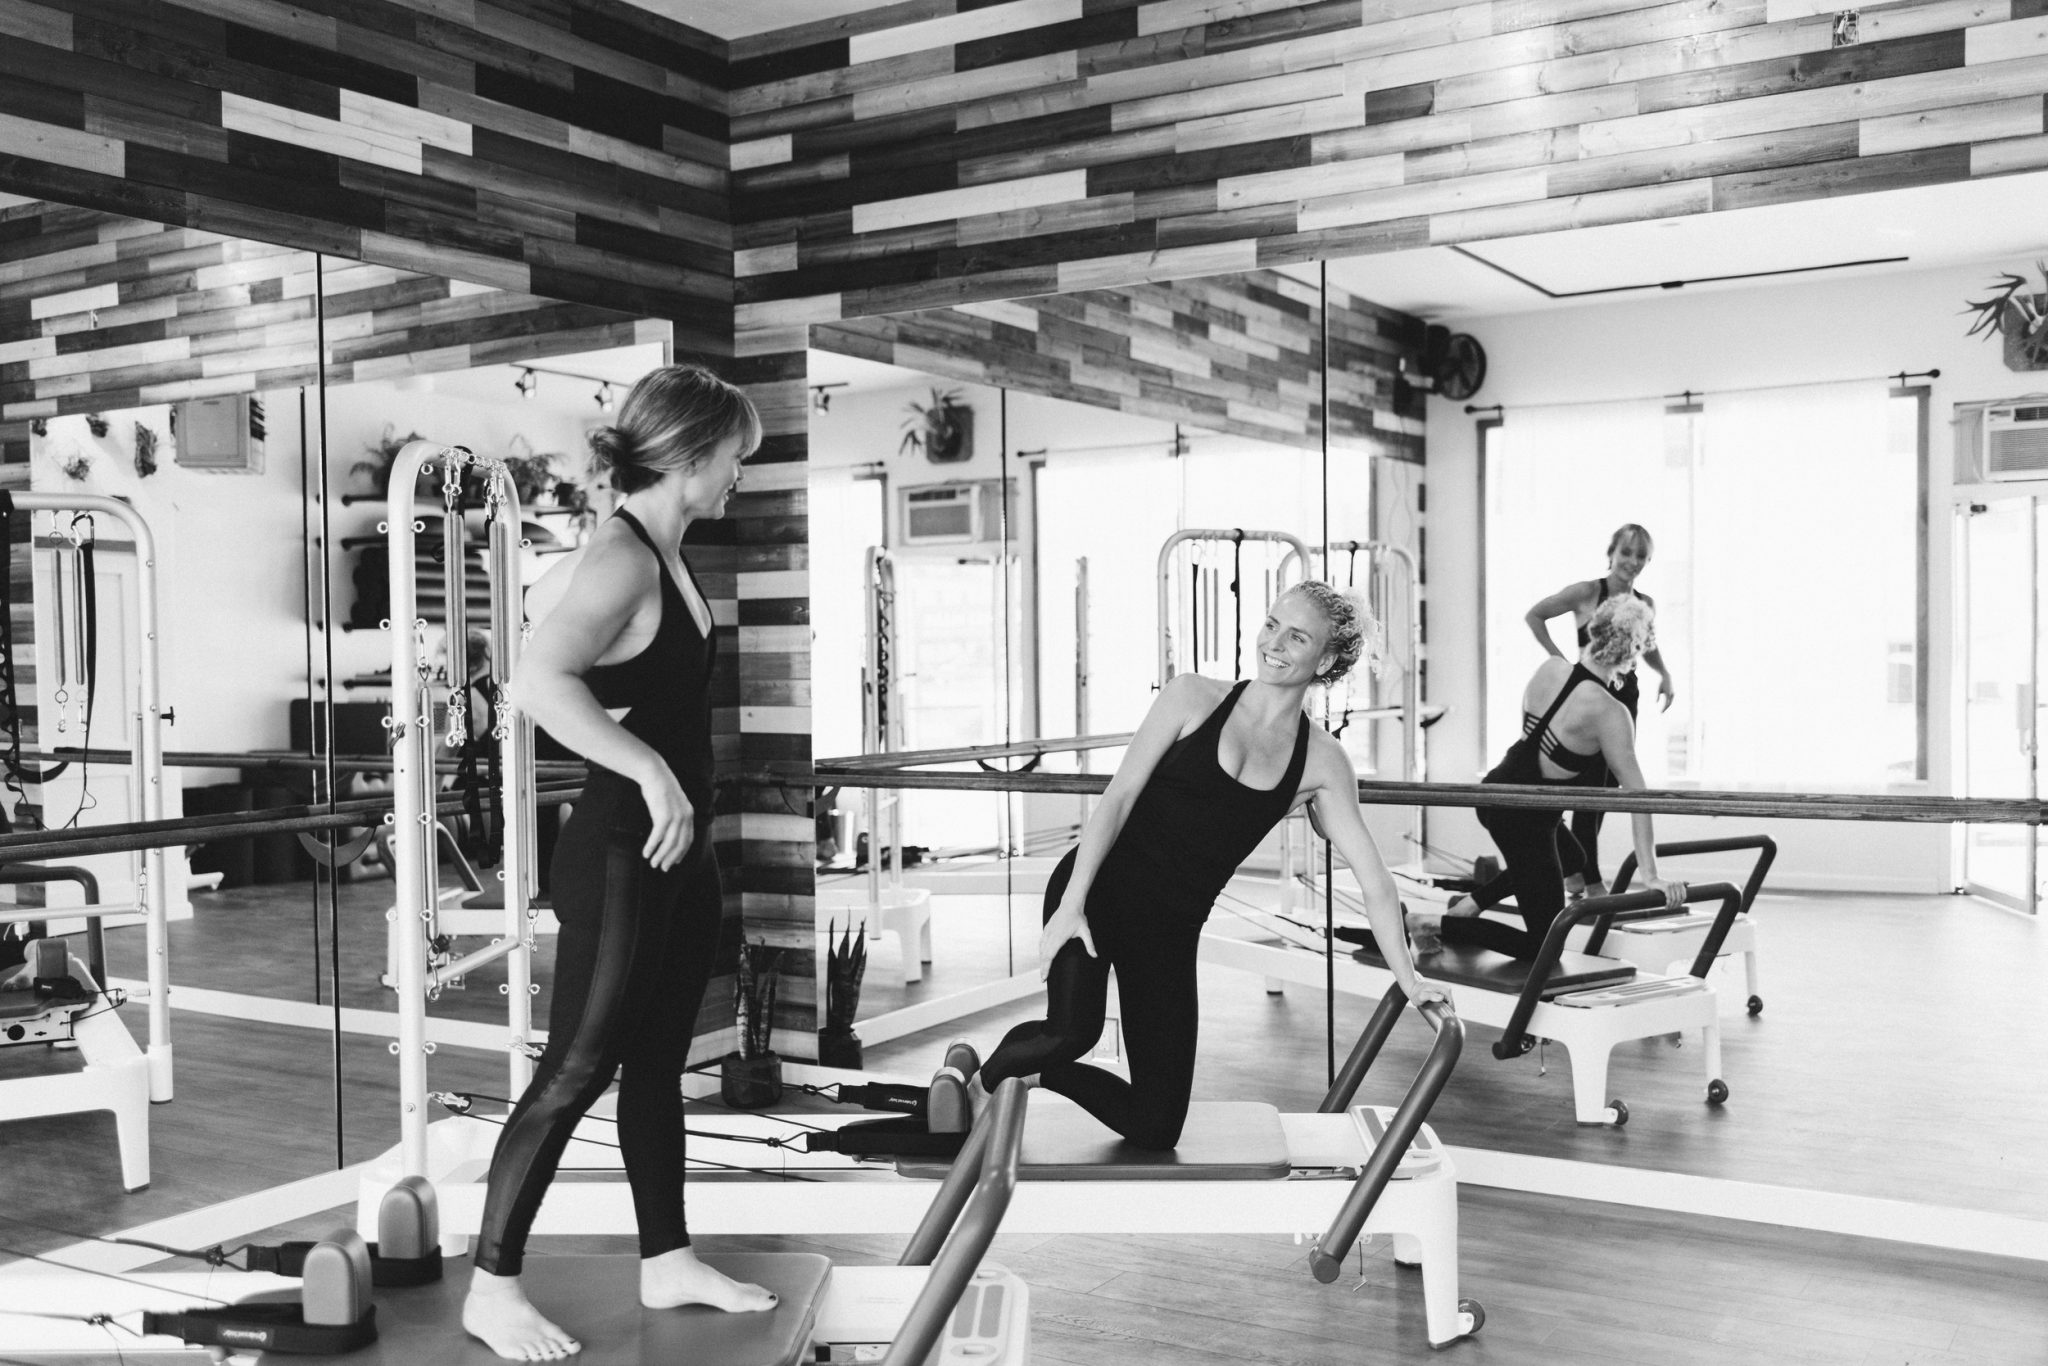 body_BodyFit_fit_body_fitness_health_body_bodybulding_vrouwen_training_arnold_club_landgraaf_landgraaf_triggerz_roy_google_heerlen_geleen_sporten